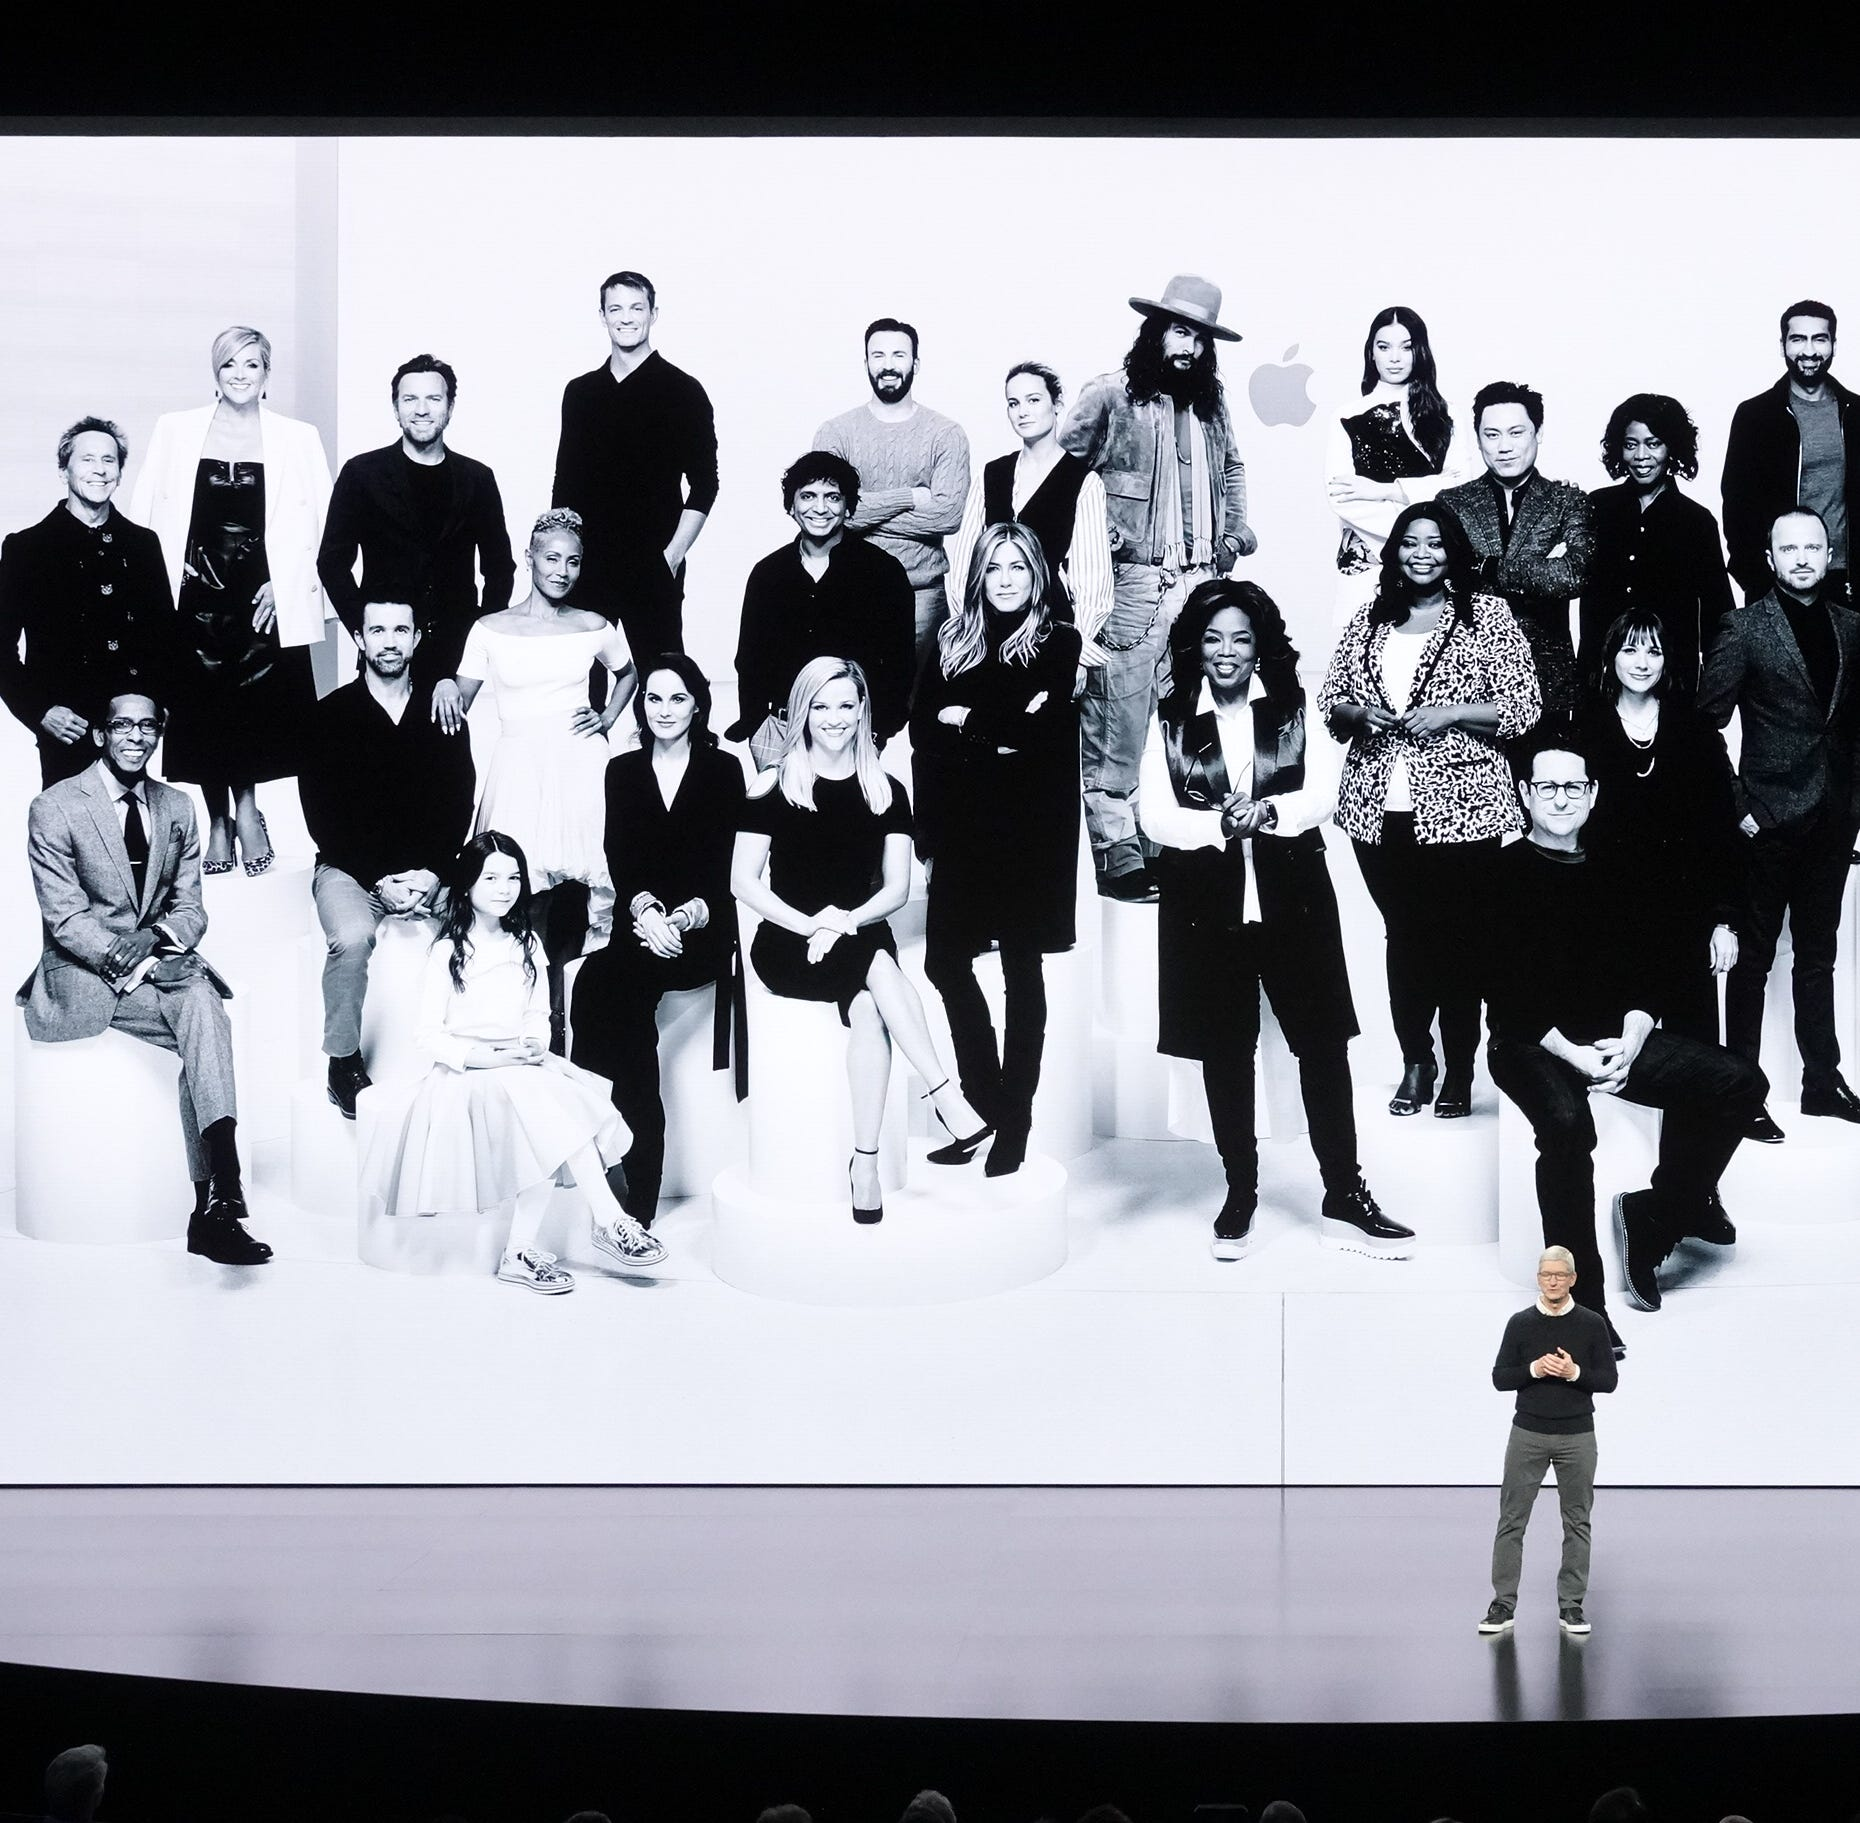 Apple CEO Tim Cook at event announcing TV+ subscription service, in front of group photo of Apple stars, including Oprah Winfrey, Reese Witherspoon and others